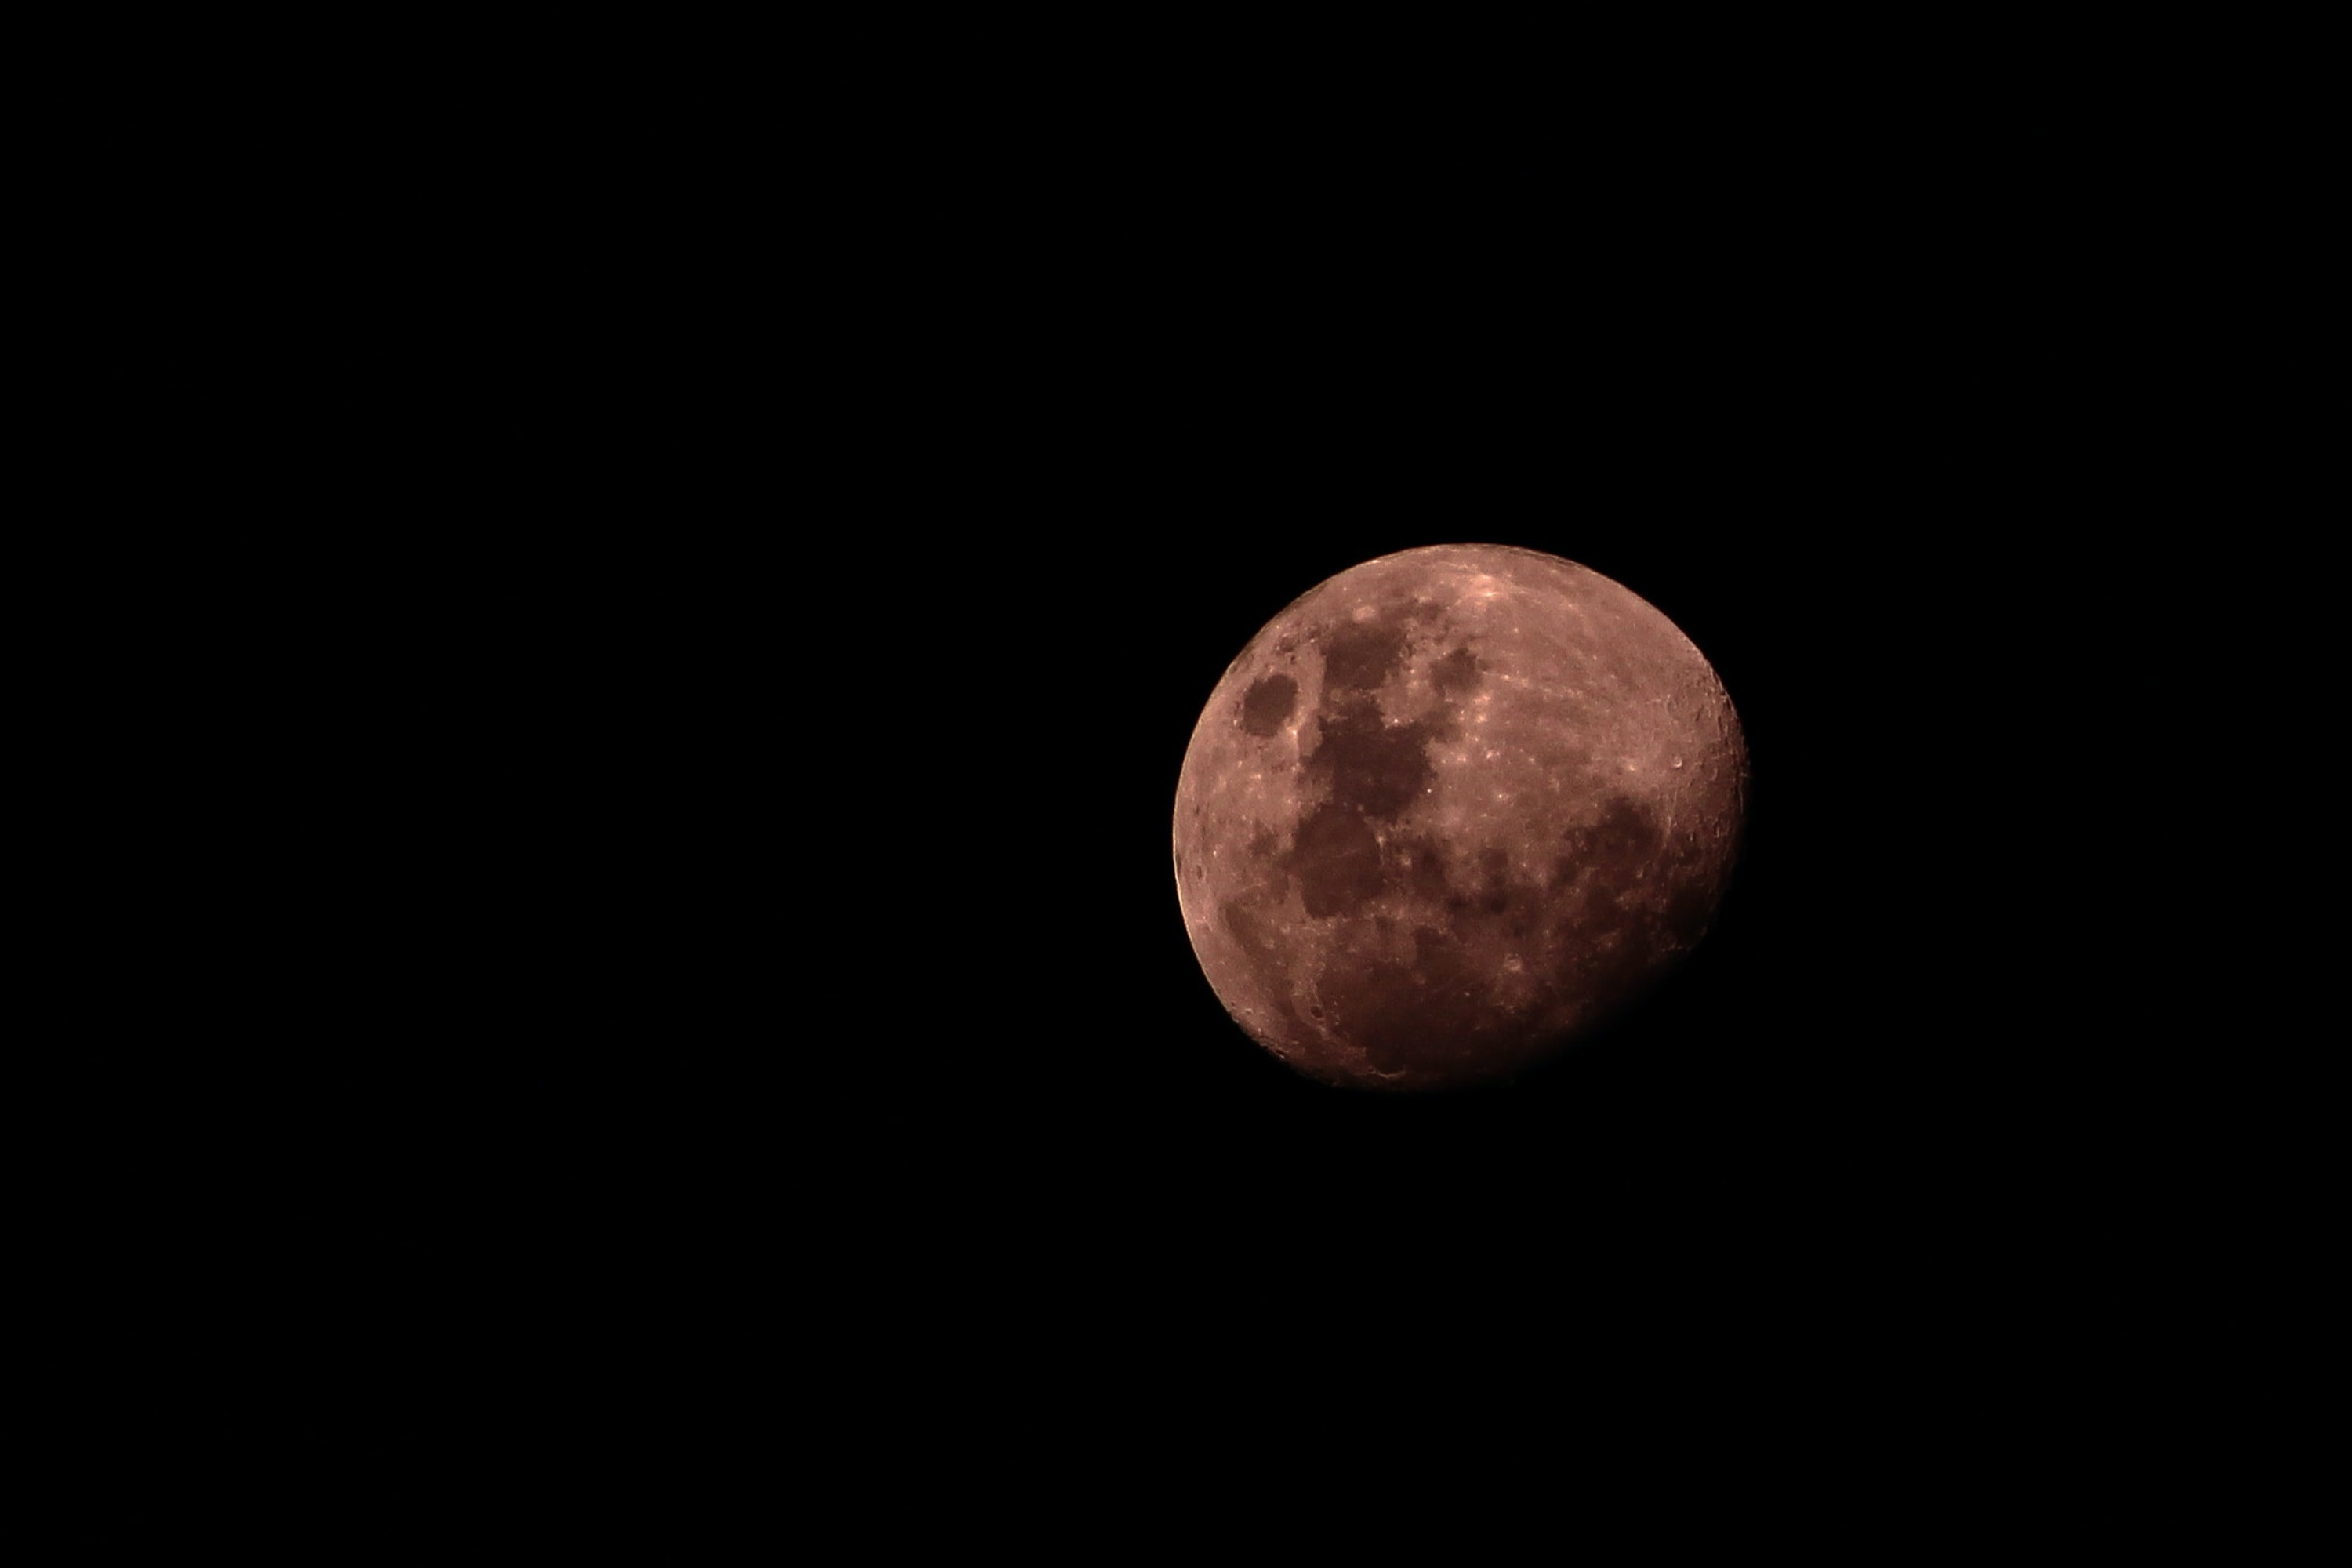 The moon glowing red against the night sky